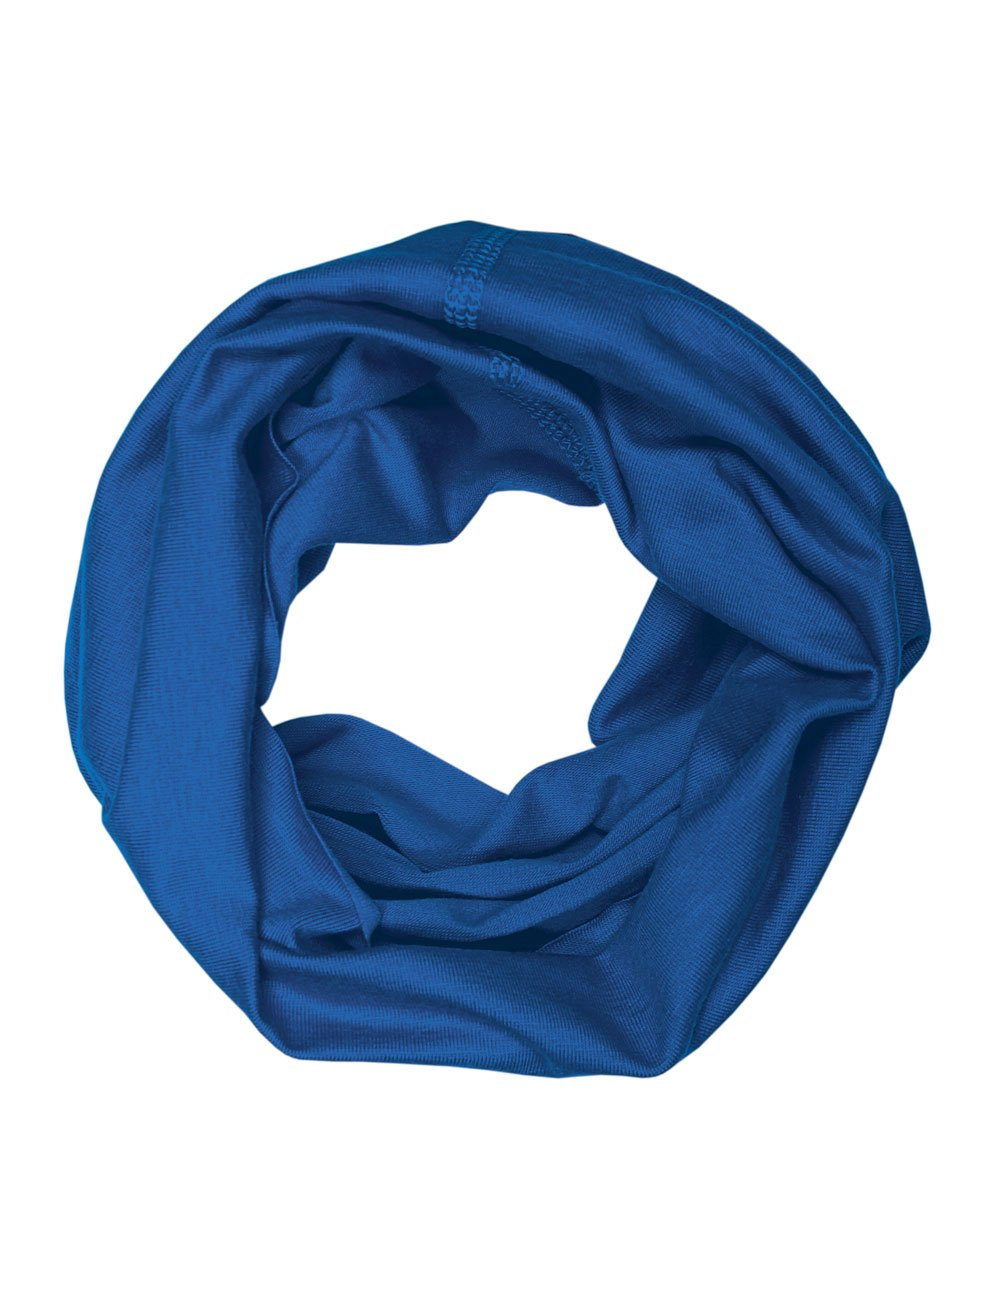 MaxiMo Boy's MultifunktionstuchuniUPF 50+ Plain Neckerchief Blue (Gentian) 23600-809500